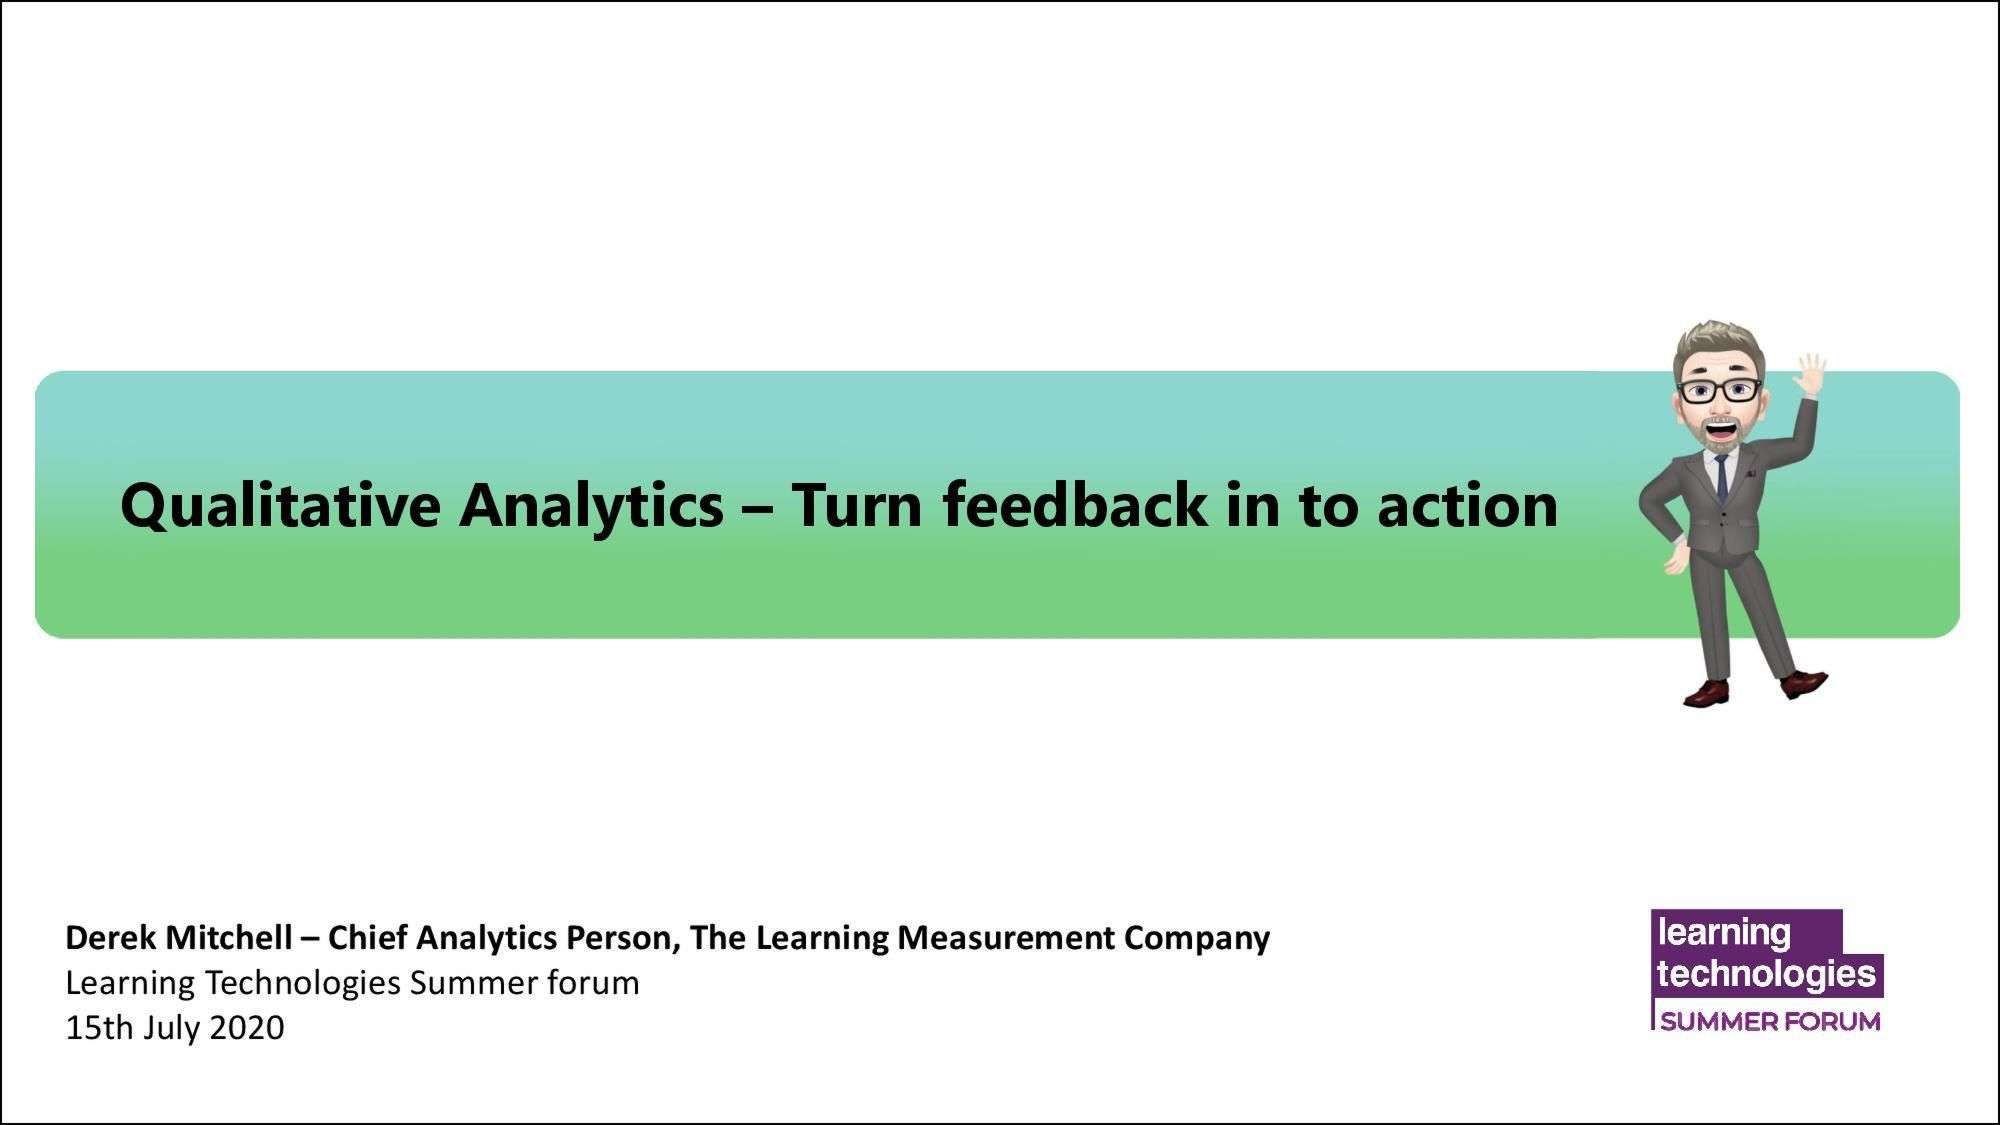 Qualitative Analytics – Turn feedback in to action